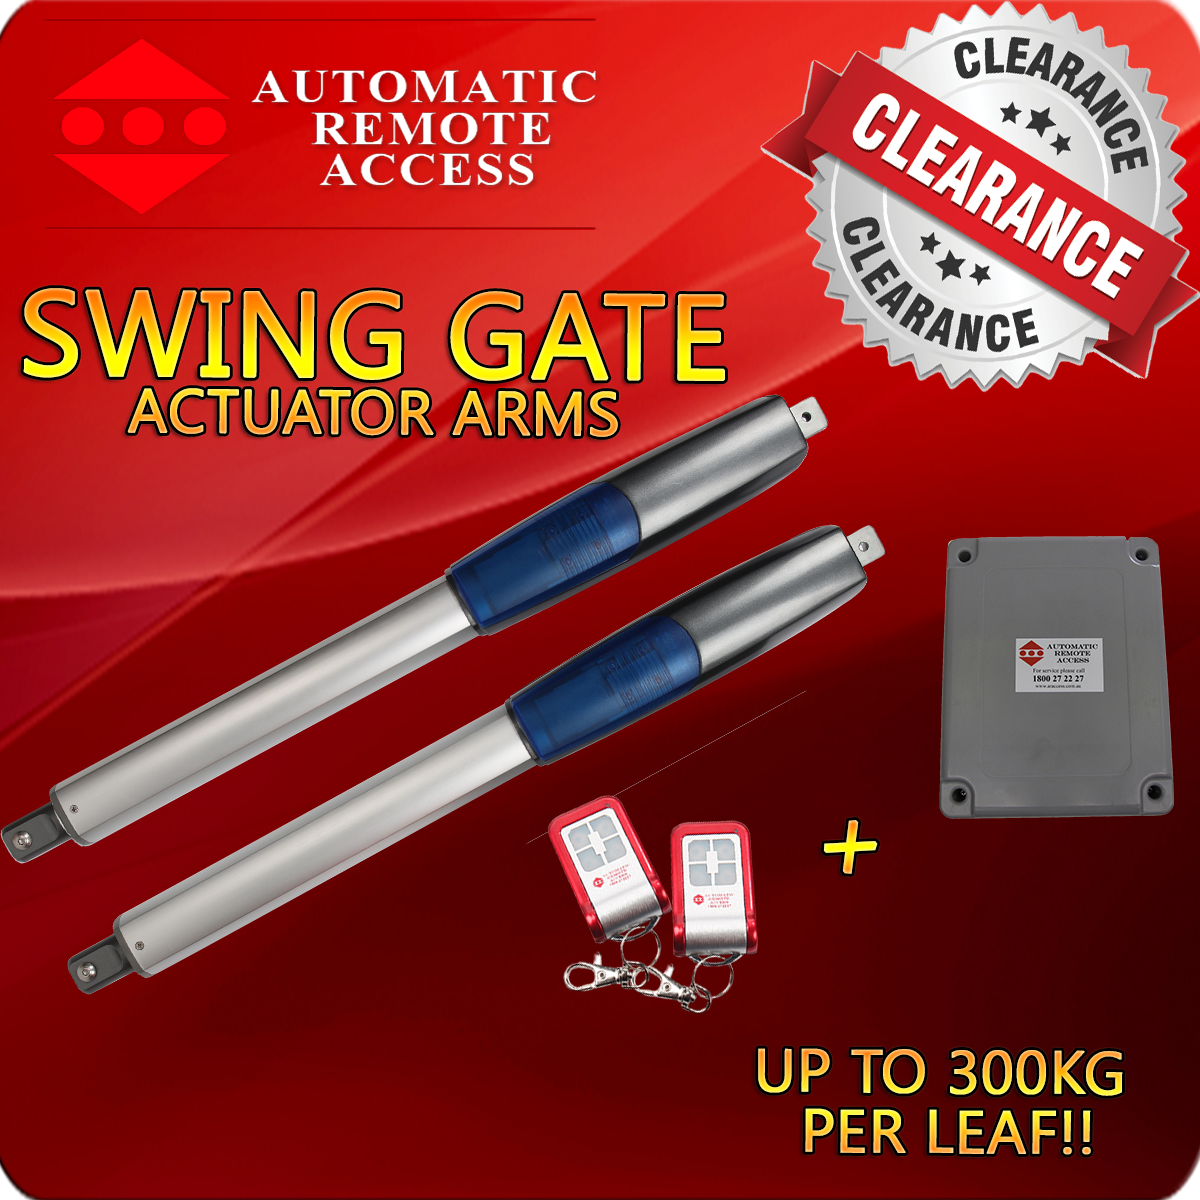 Actuator Driven Swing Gate Opener, 2 x Remotes and 1 x Control Box